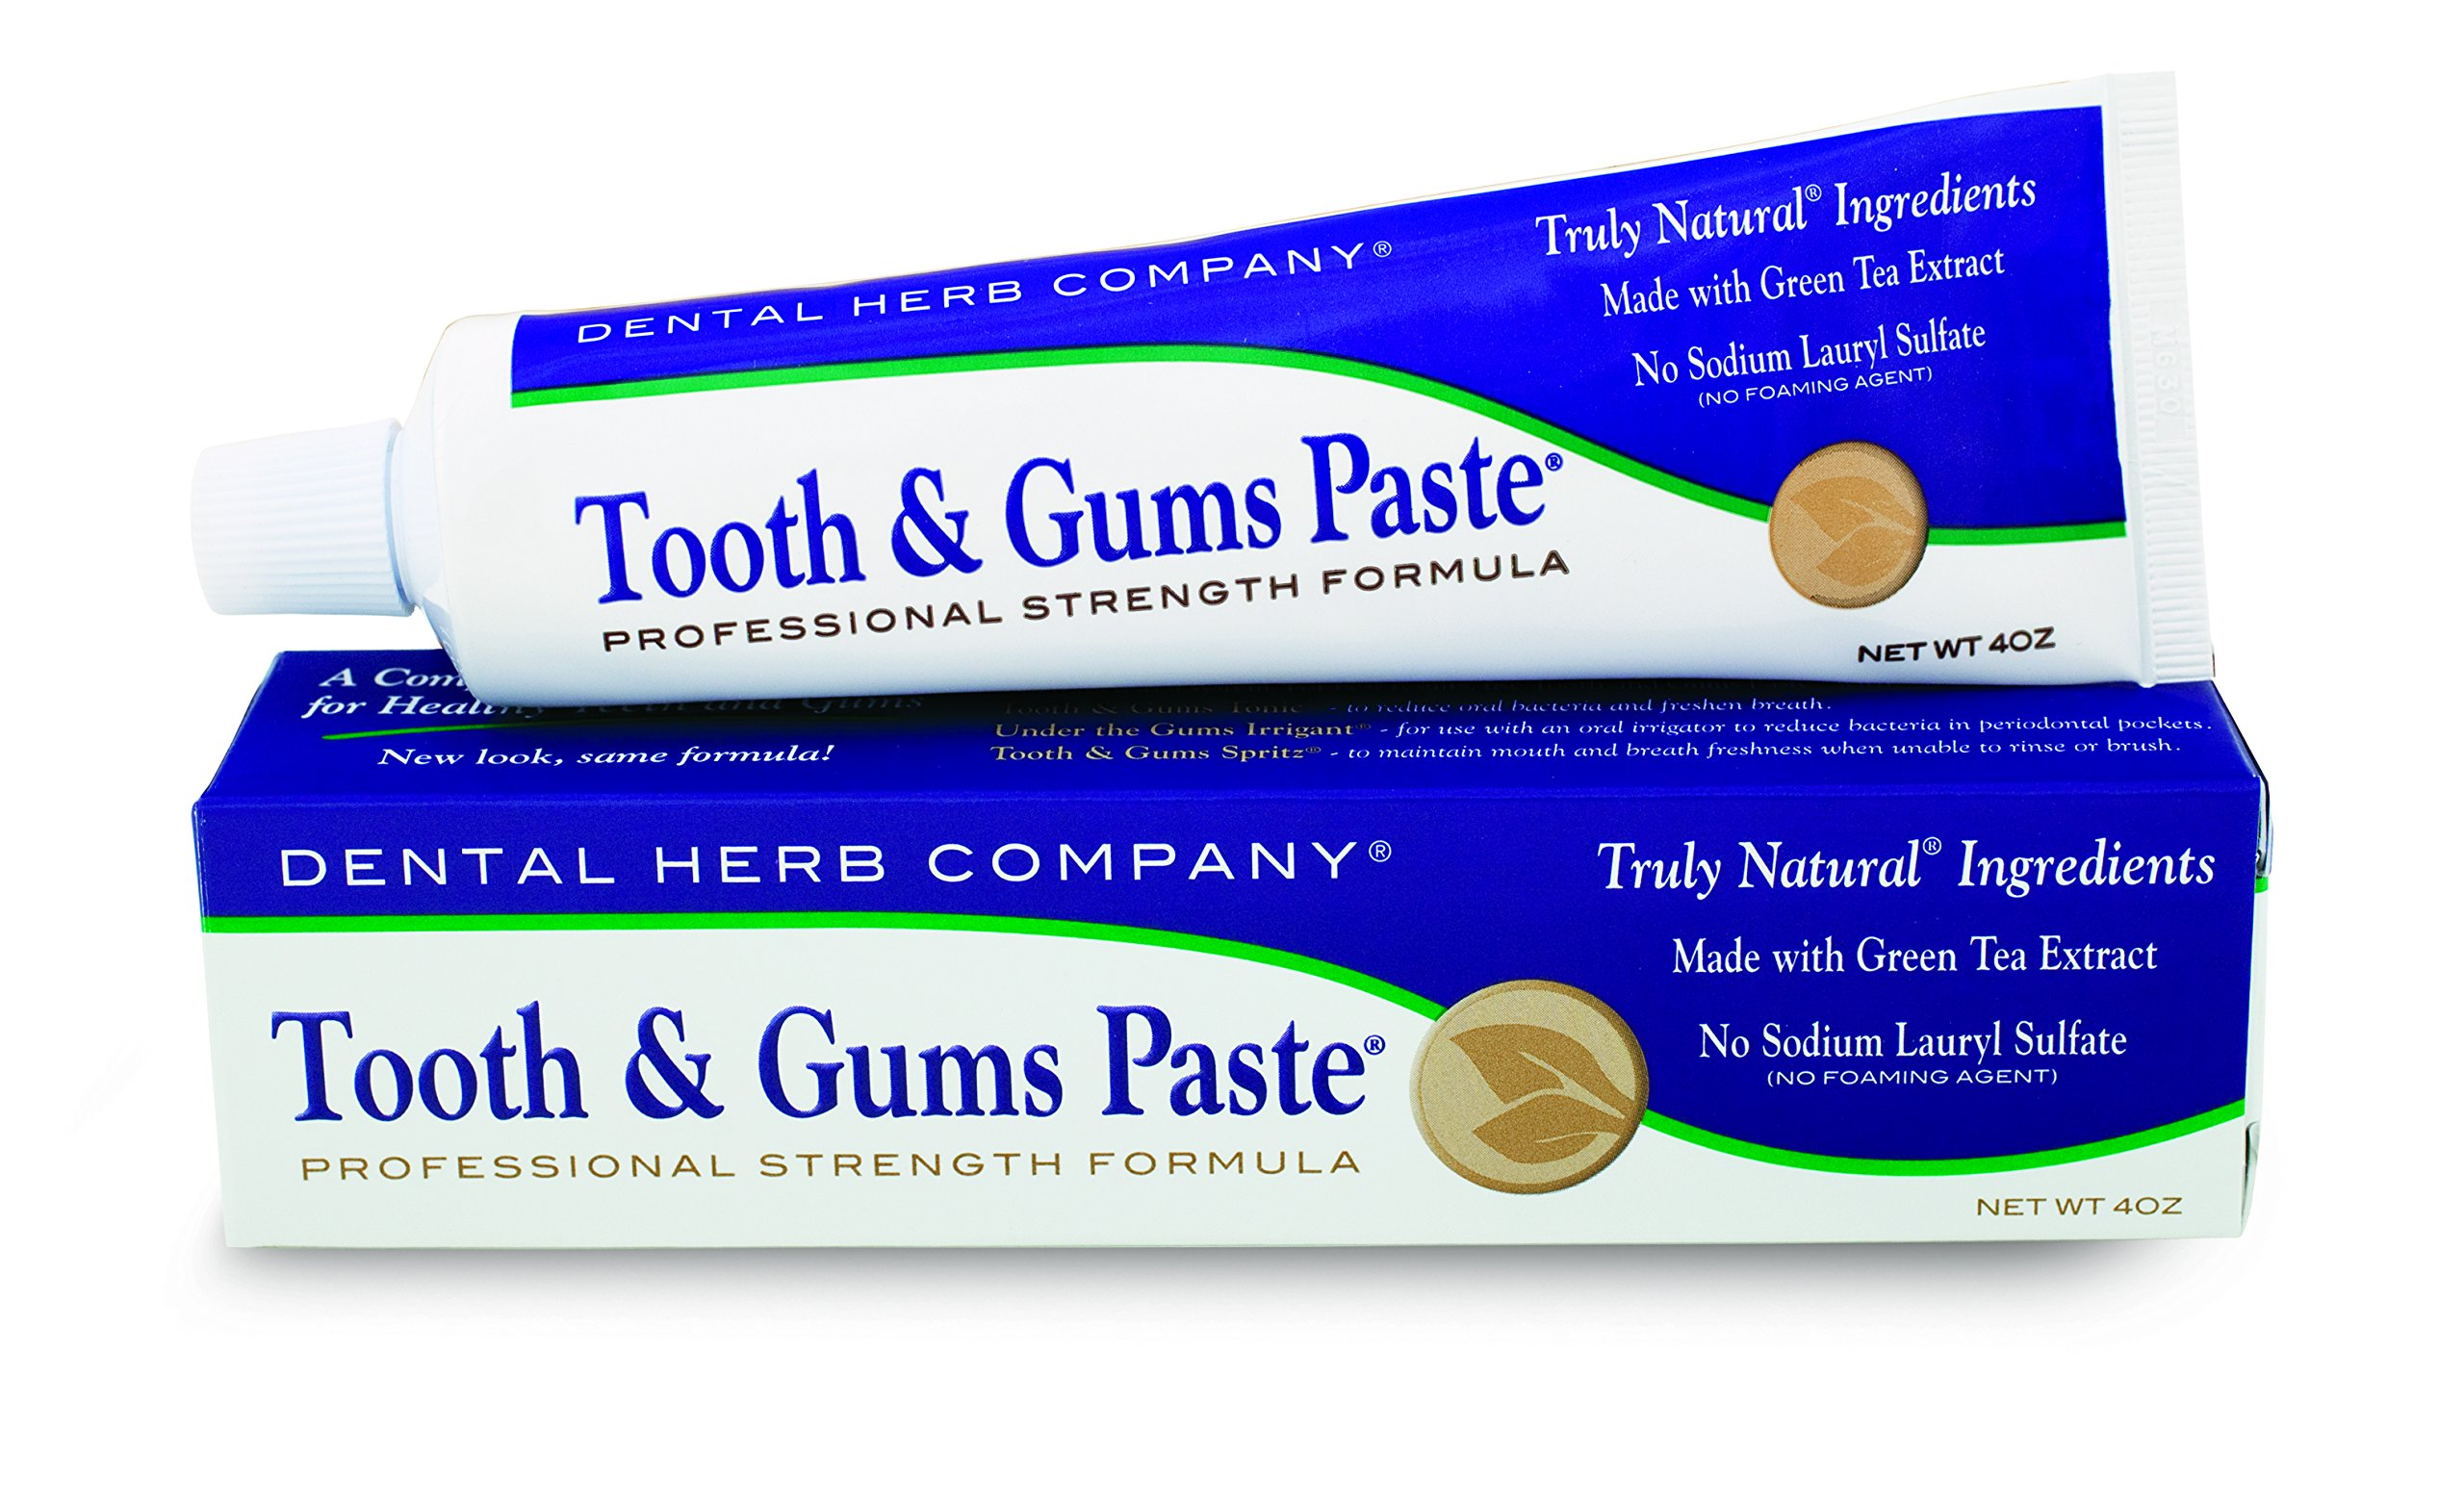 Dental Herb Company DHC-TGP Tooth & Gums Paste Super Value 12-Pack by Dental Herb Company